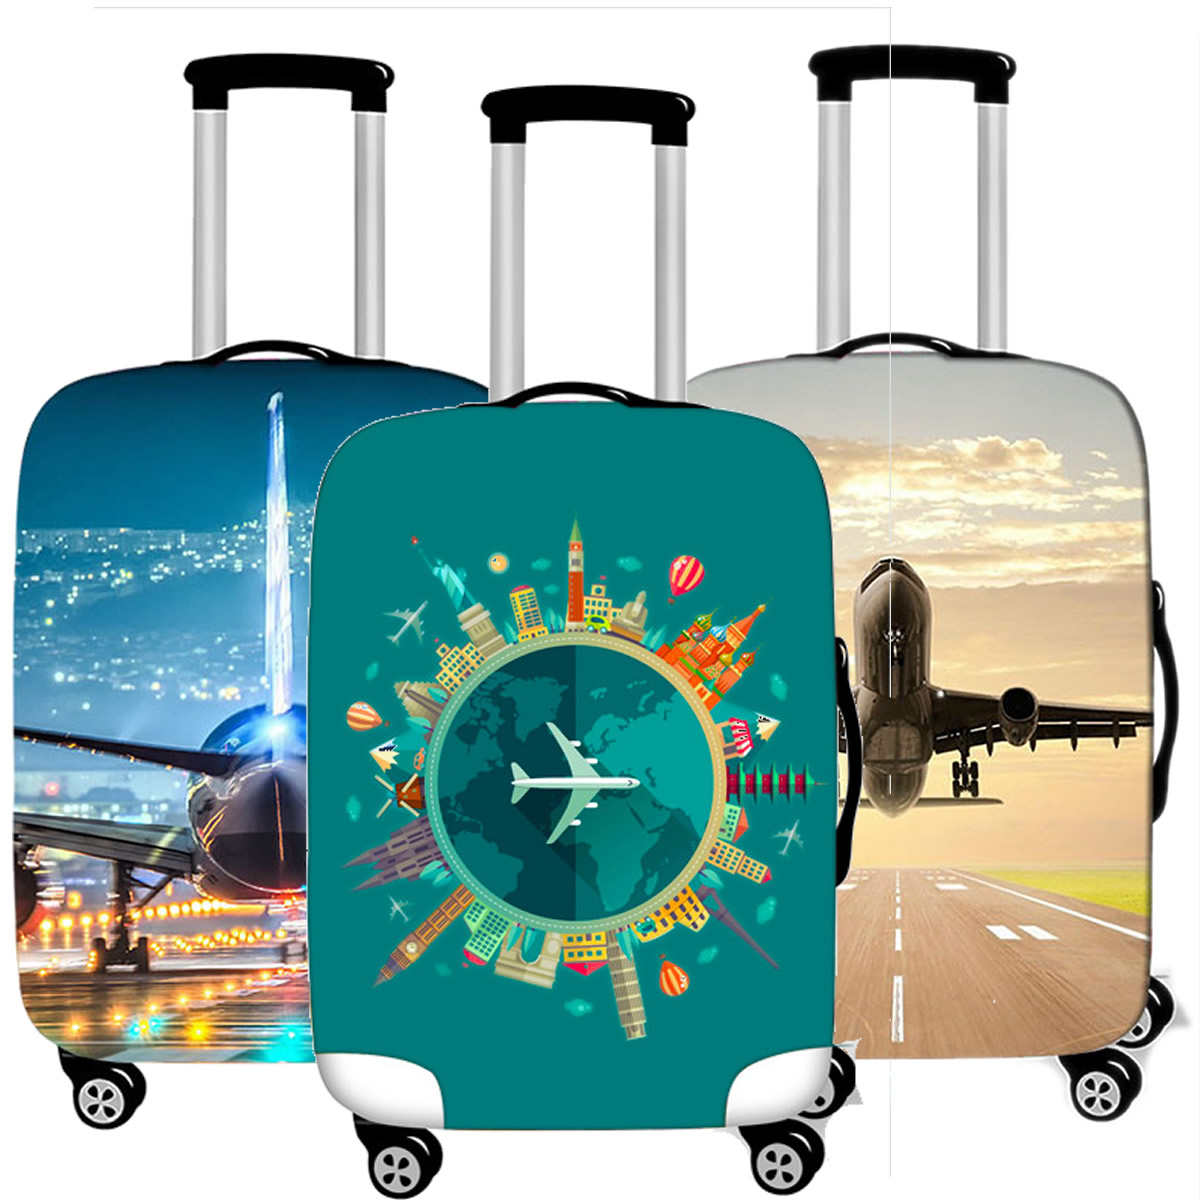 Creative Airplane Luggage Cover Case Protective Travel Accessories Waterproof Thicken Elastic Suitcase Trunk Case 18-32 Inch XL